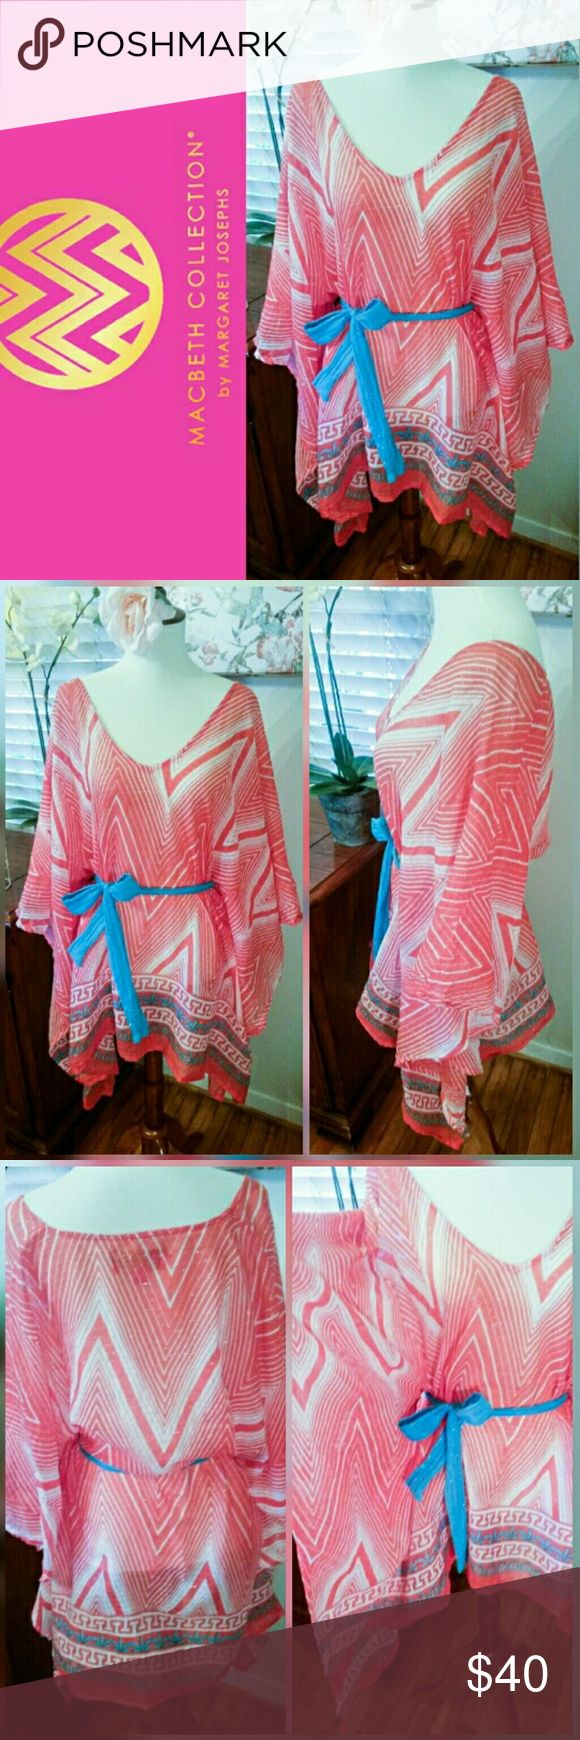 """Macbeth Collection Caftan style summer tunic Macbeth Collection by Margaret Josephs Caftan  style summer tunic in coral with turquoise accents. Excellent condition.   Perfect breezy top for pool or beach days!! ♡  Turquoise tie belt fully detachable.  Measures 29"""" long in front  32"""" long in back 20"""" across at underarms  Flowy open drape.   95% Cotton 5% Lurex  Machine wash.  *TAG READS M/L FOR SIZE* Macbeth Collection Tops Tunics"""